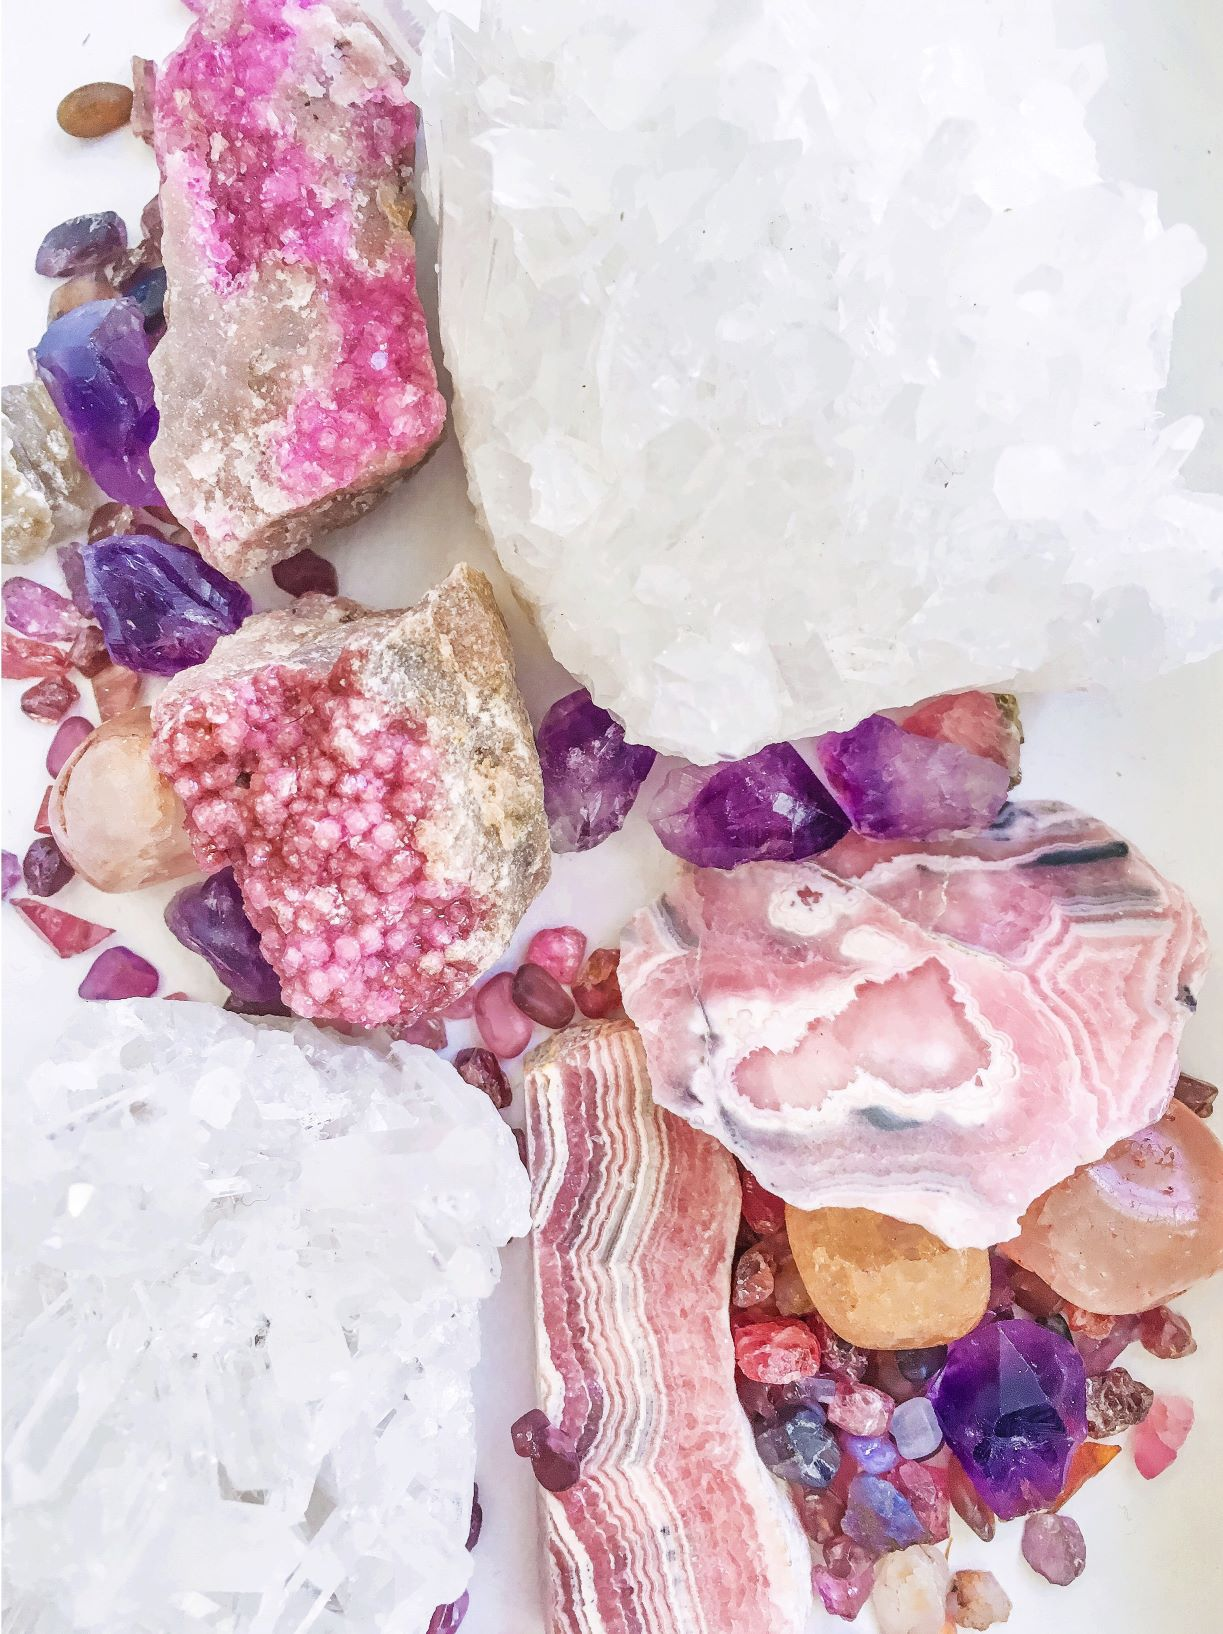 collection-of-pink-and-purple-gems-minerals-and-rocks-on-a-white-background_t20_OoQP08_2MB_comp